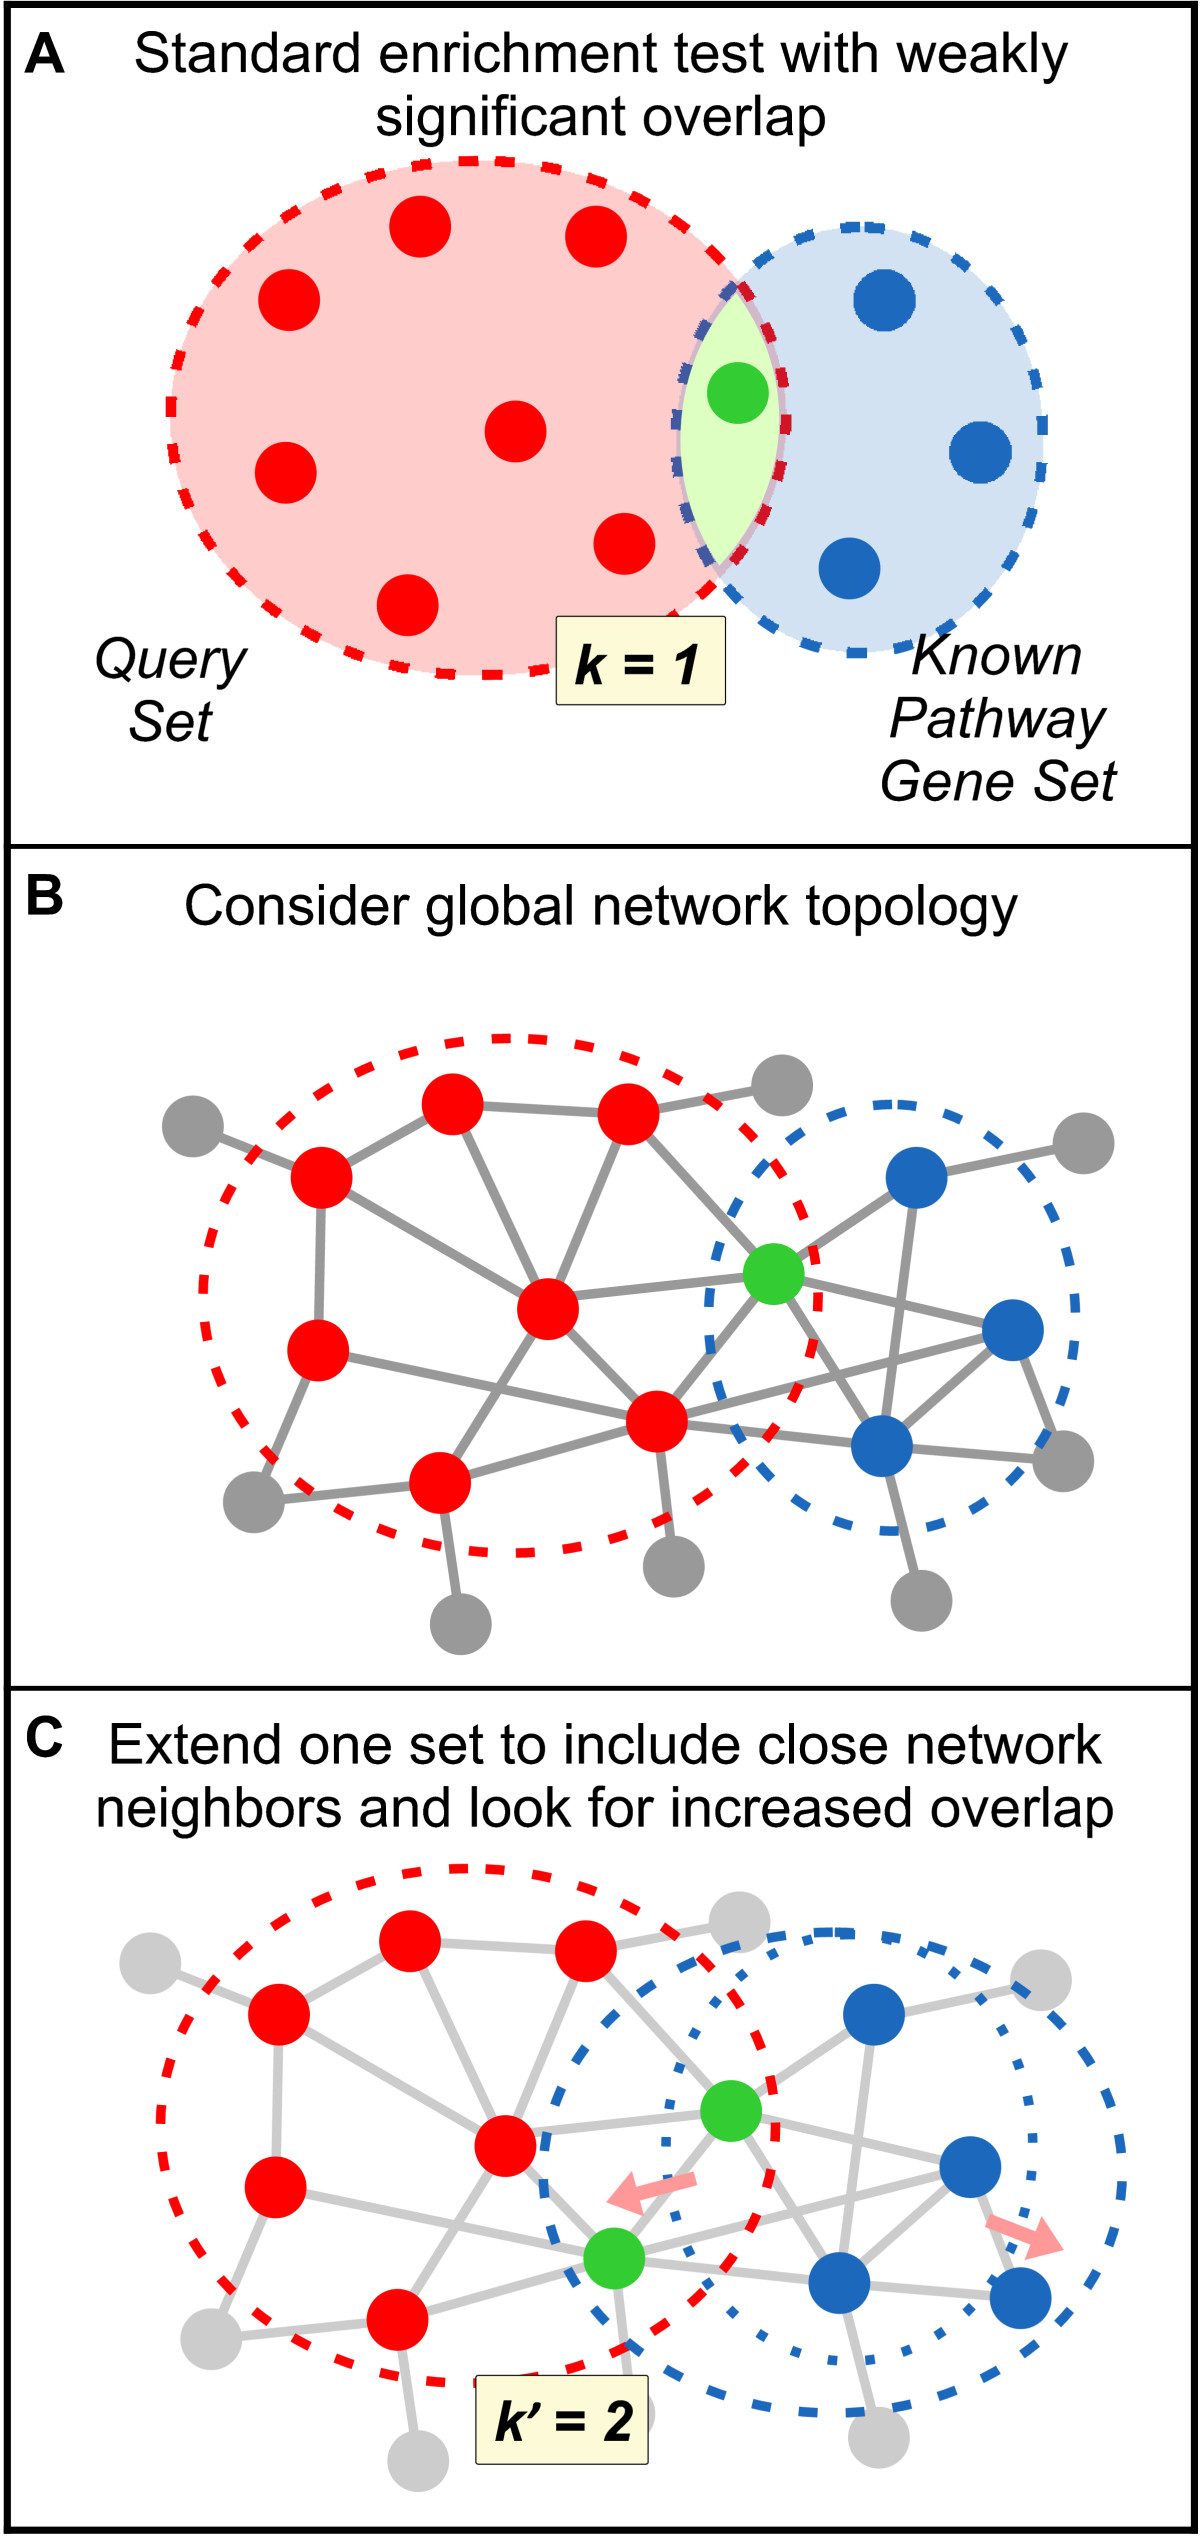 https://static-content.springer.com/image/art%3A10.1186%2Fgb-2012-13-12-r125/MediaObjects/13059_2012_Article_3016_Fig3_HTML.jpg